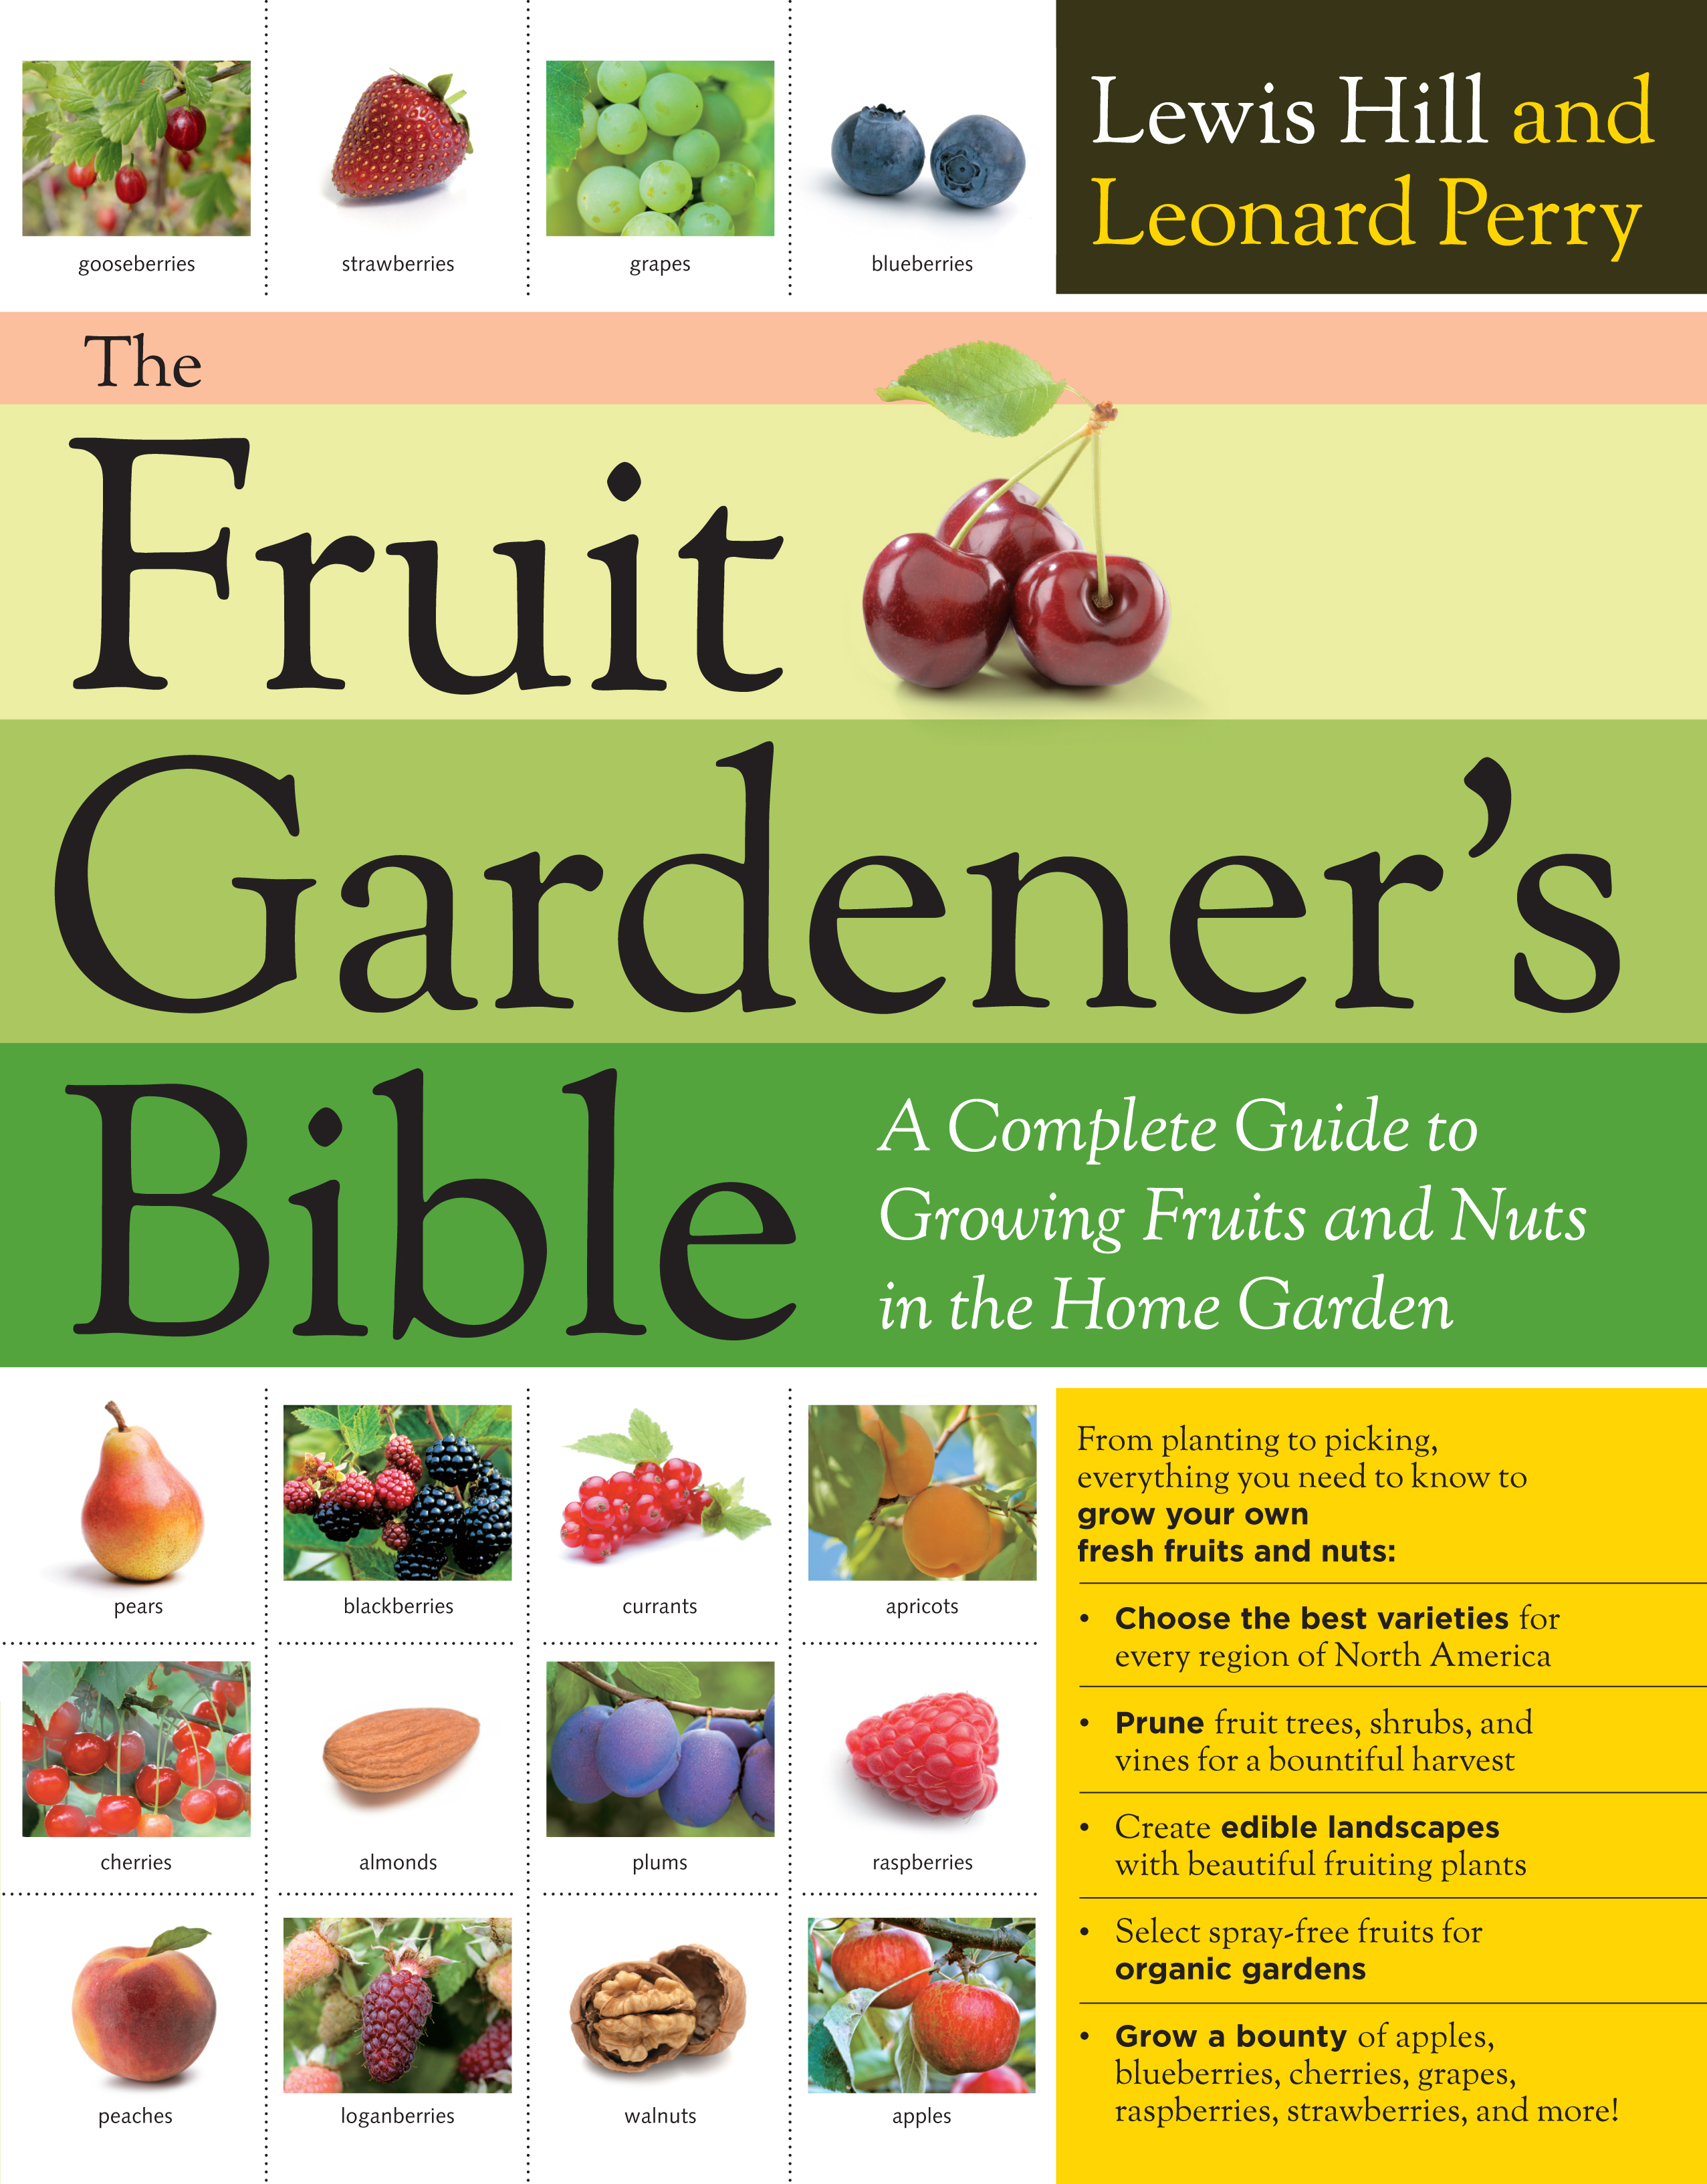 The Fruit Gardener's Bible A Complete Guide to Growing Fruits and Nuts in the Home Garden - Lewis Hill